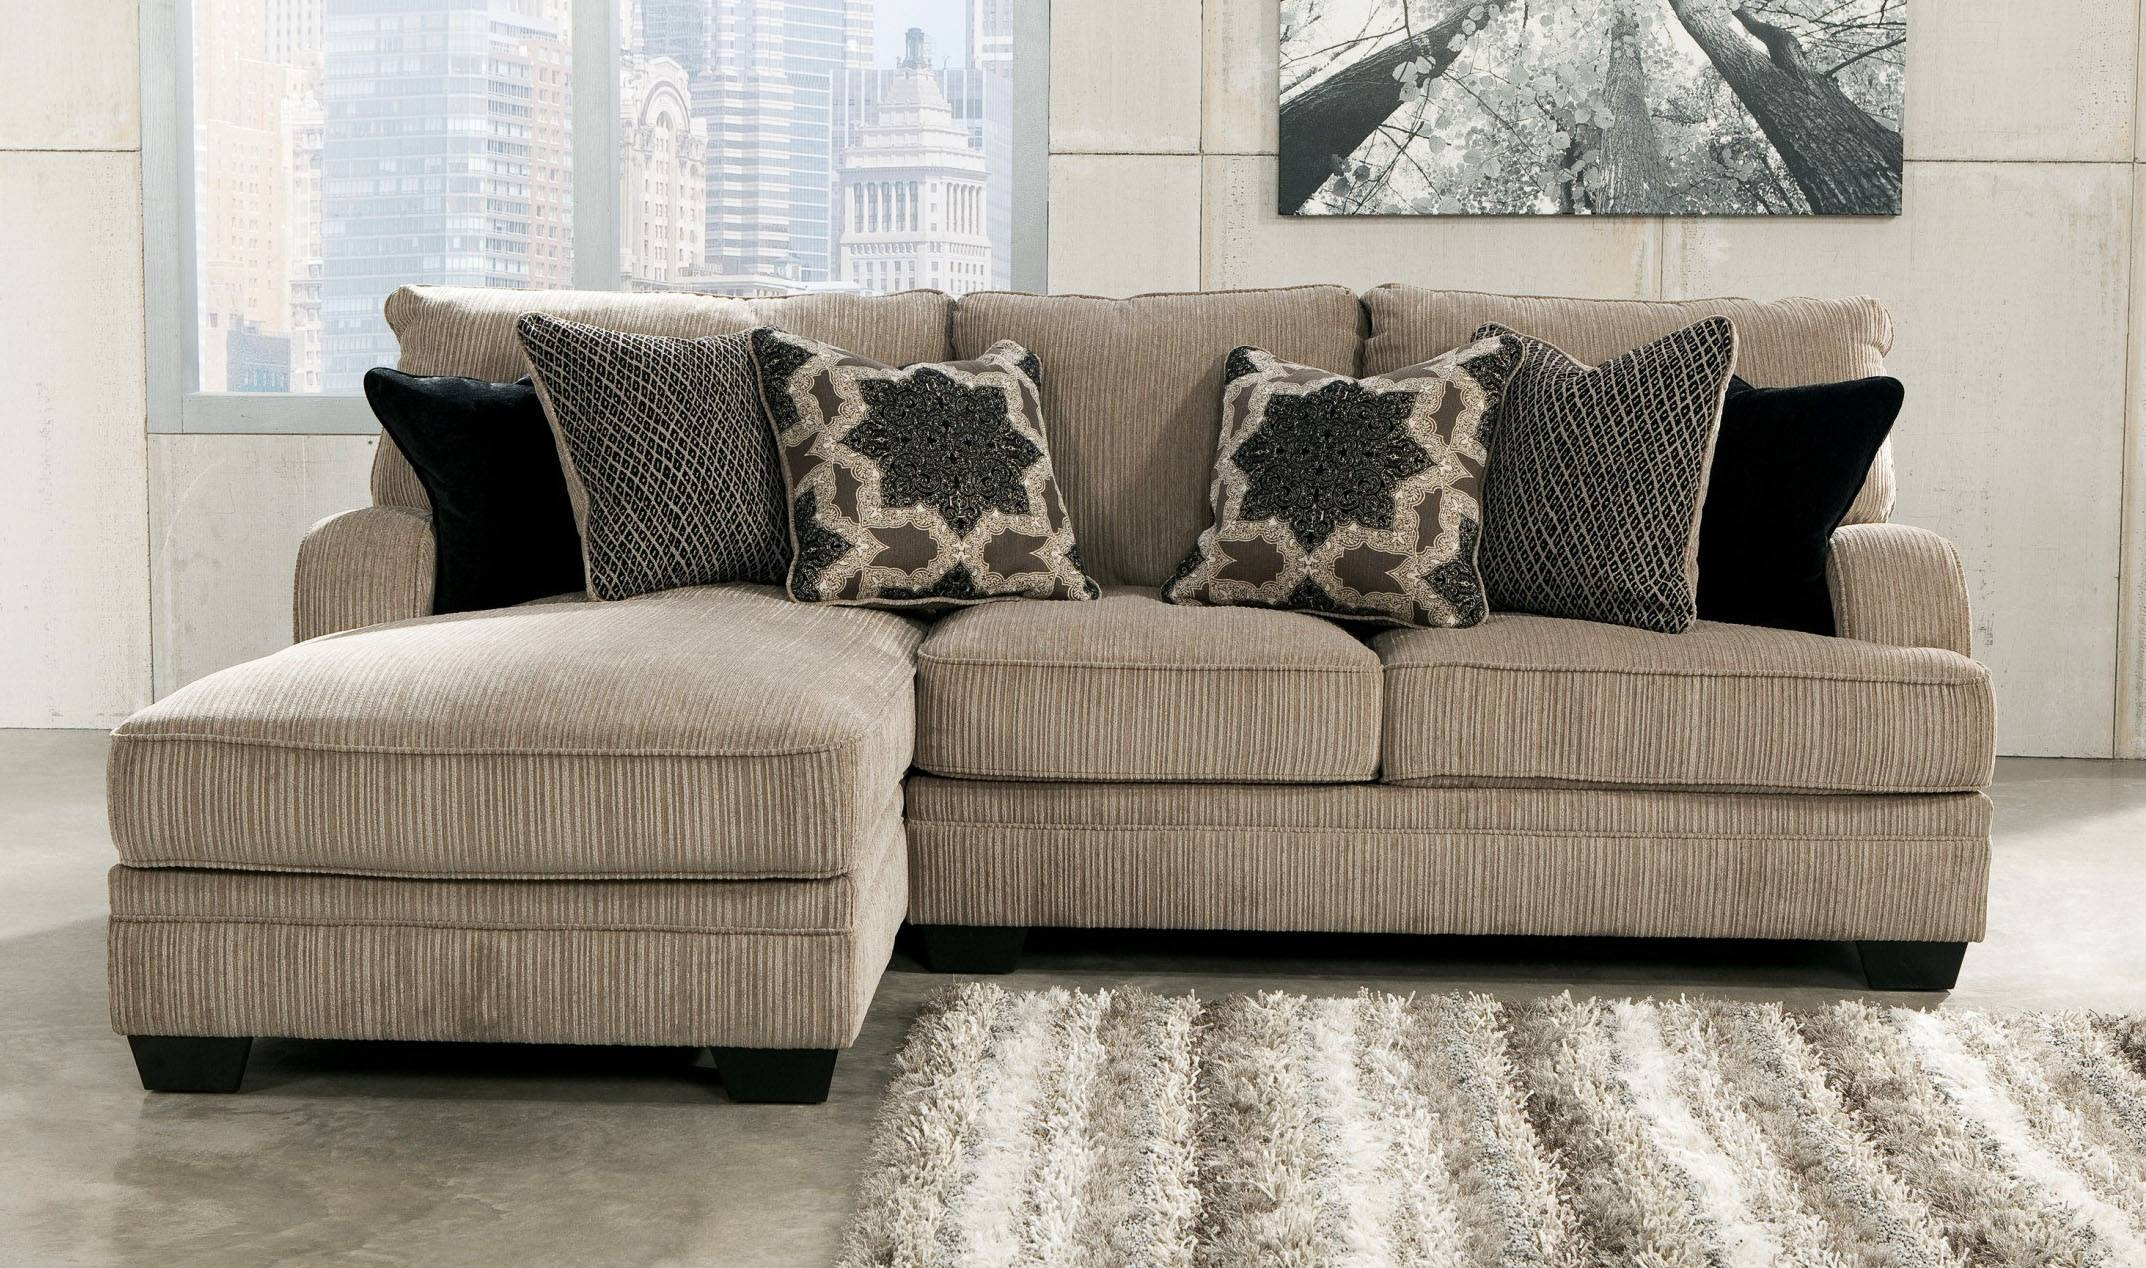 Contemporary Sectional Sofas For Small Spaces #9270 pertaining to Modern Sectional Sofas for Small Spaces (Image 5 of 25)